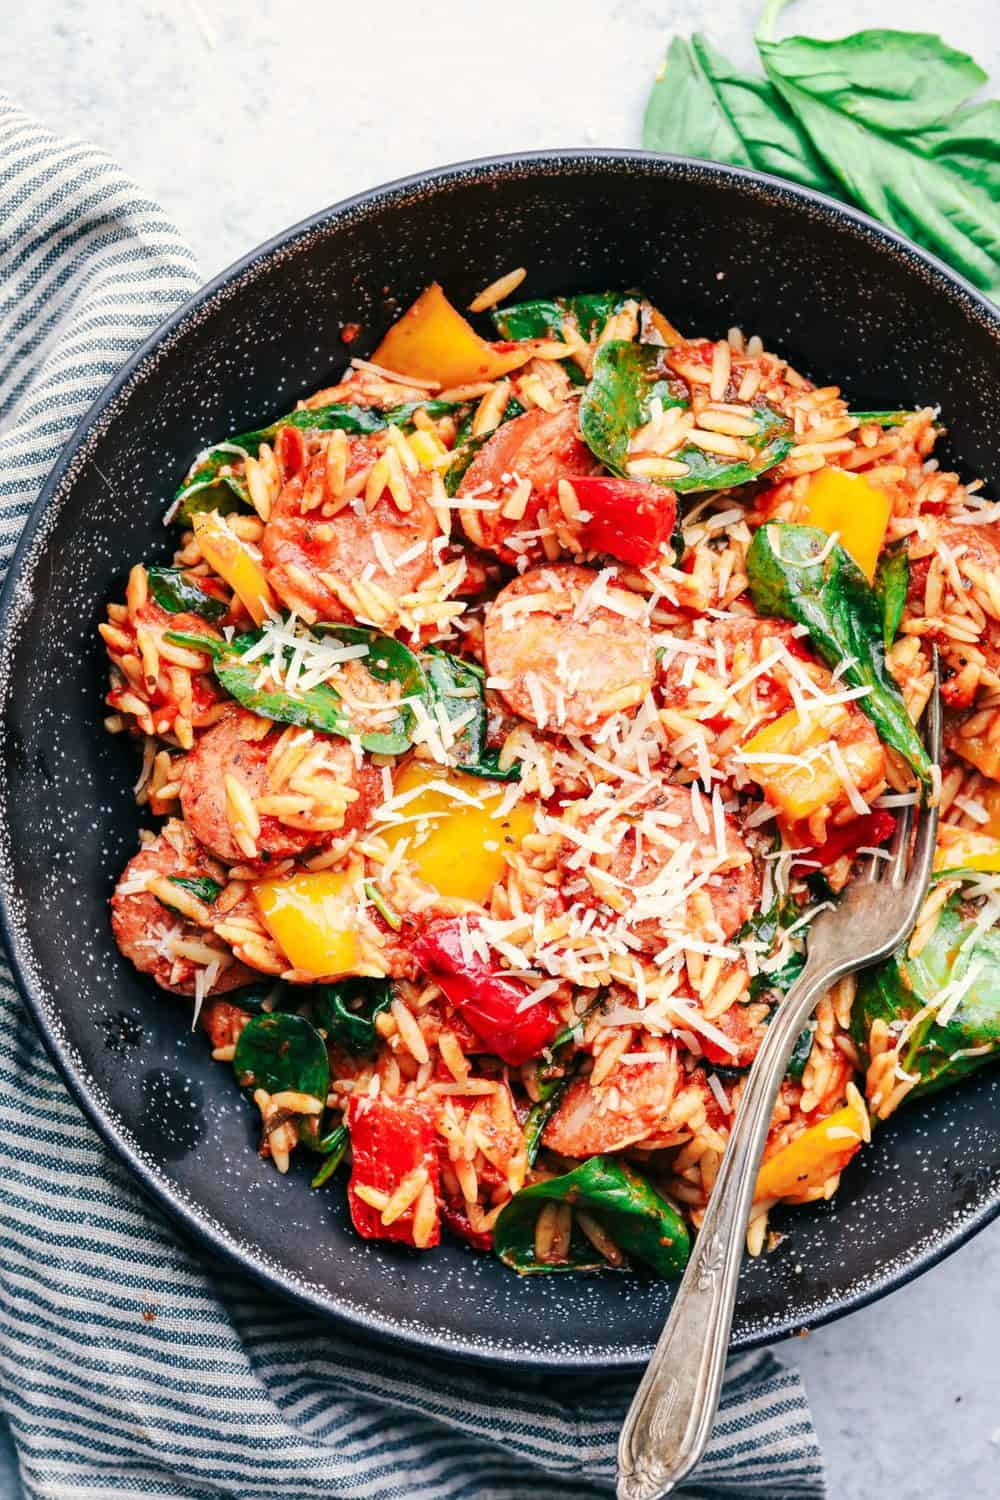 Italian Sausage and Vegetable Orzo Skillet on a black plate.